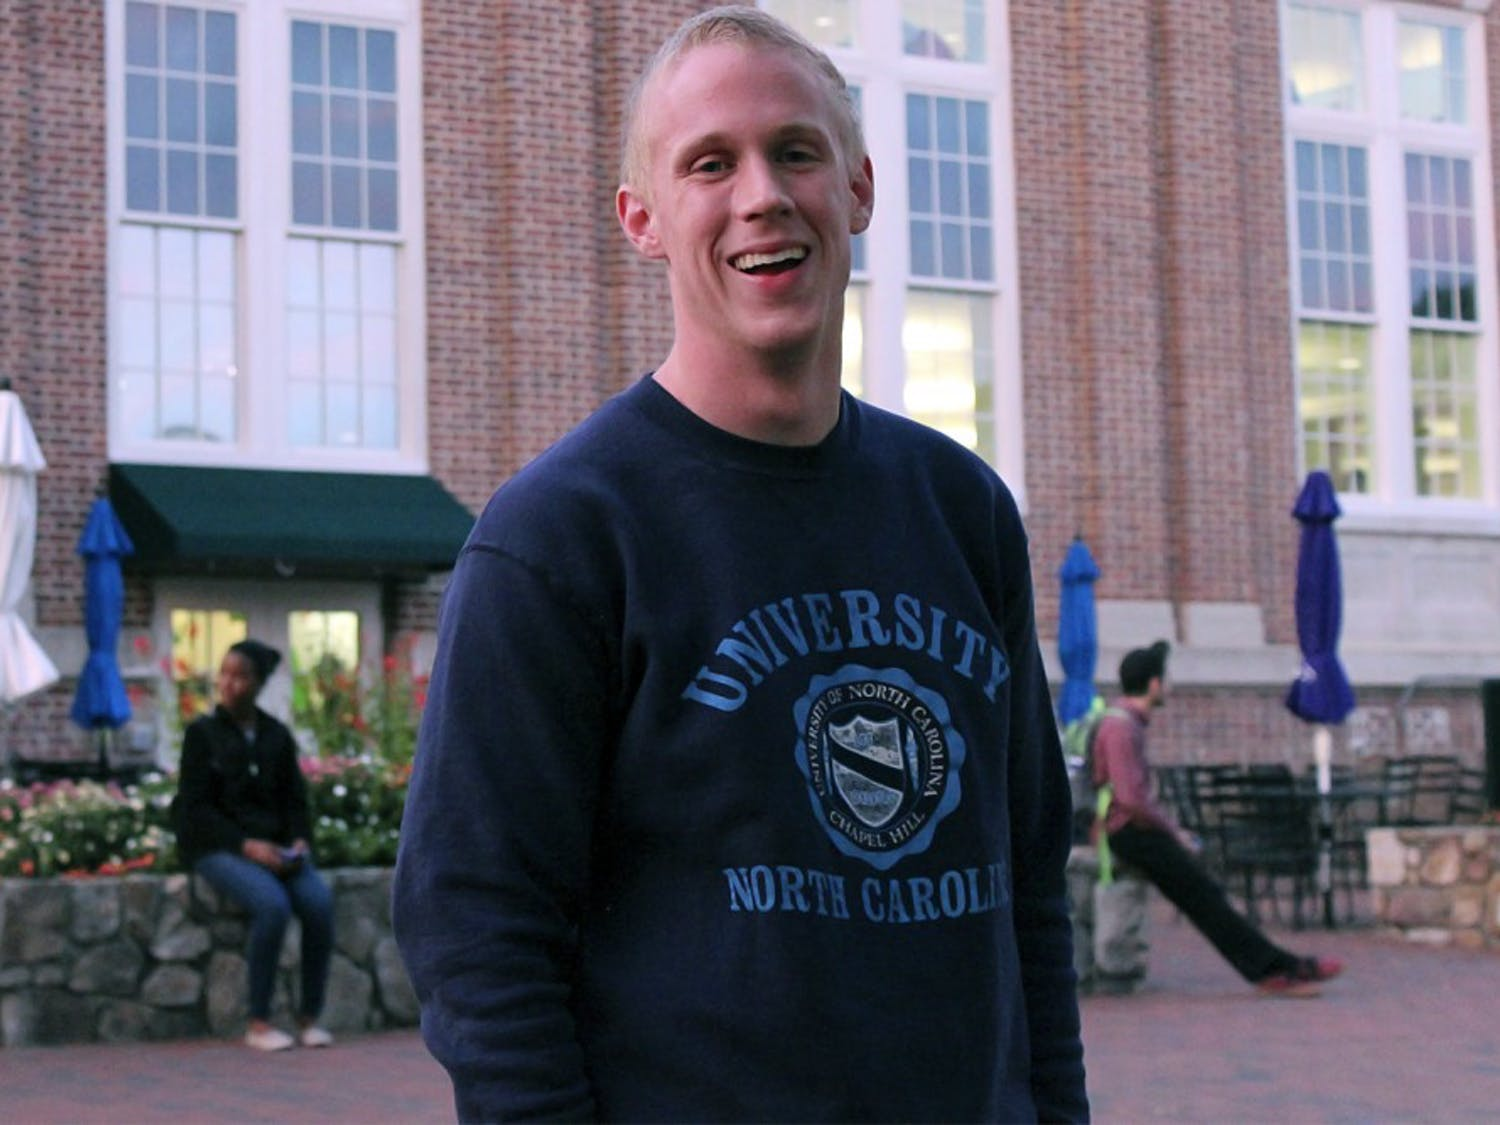 Michael Thornburg is a senior majoring in political science.  He started rapping after graduating high school; he often finds motivation in emotional struggle.